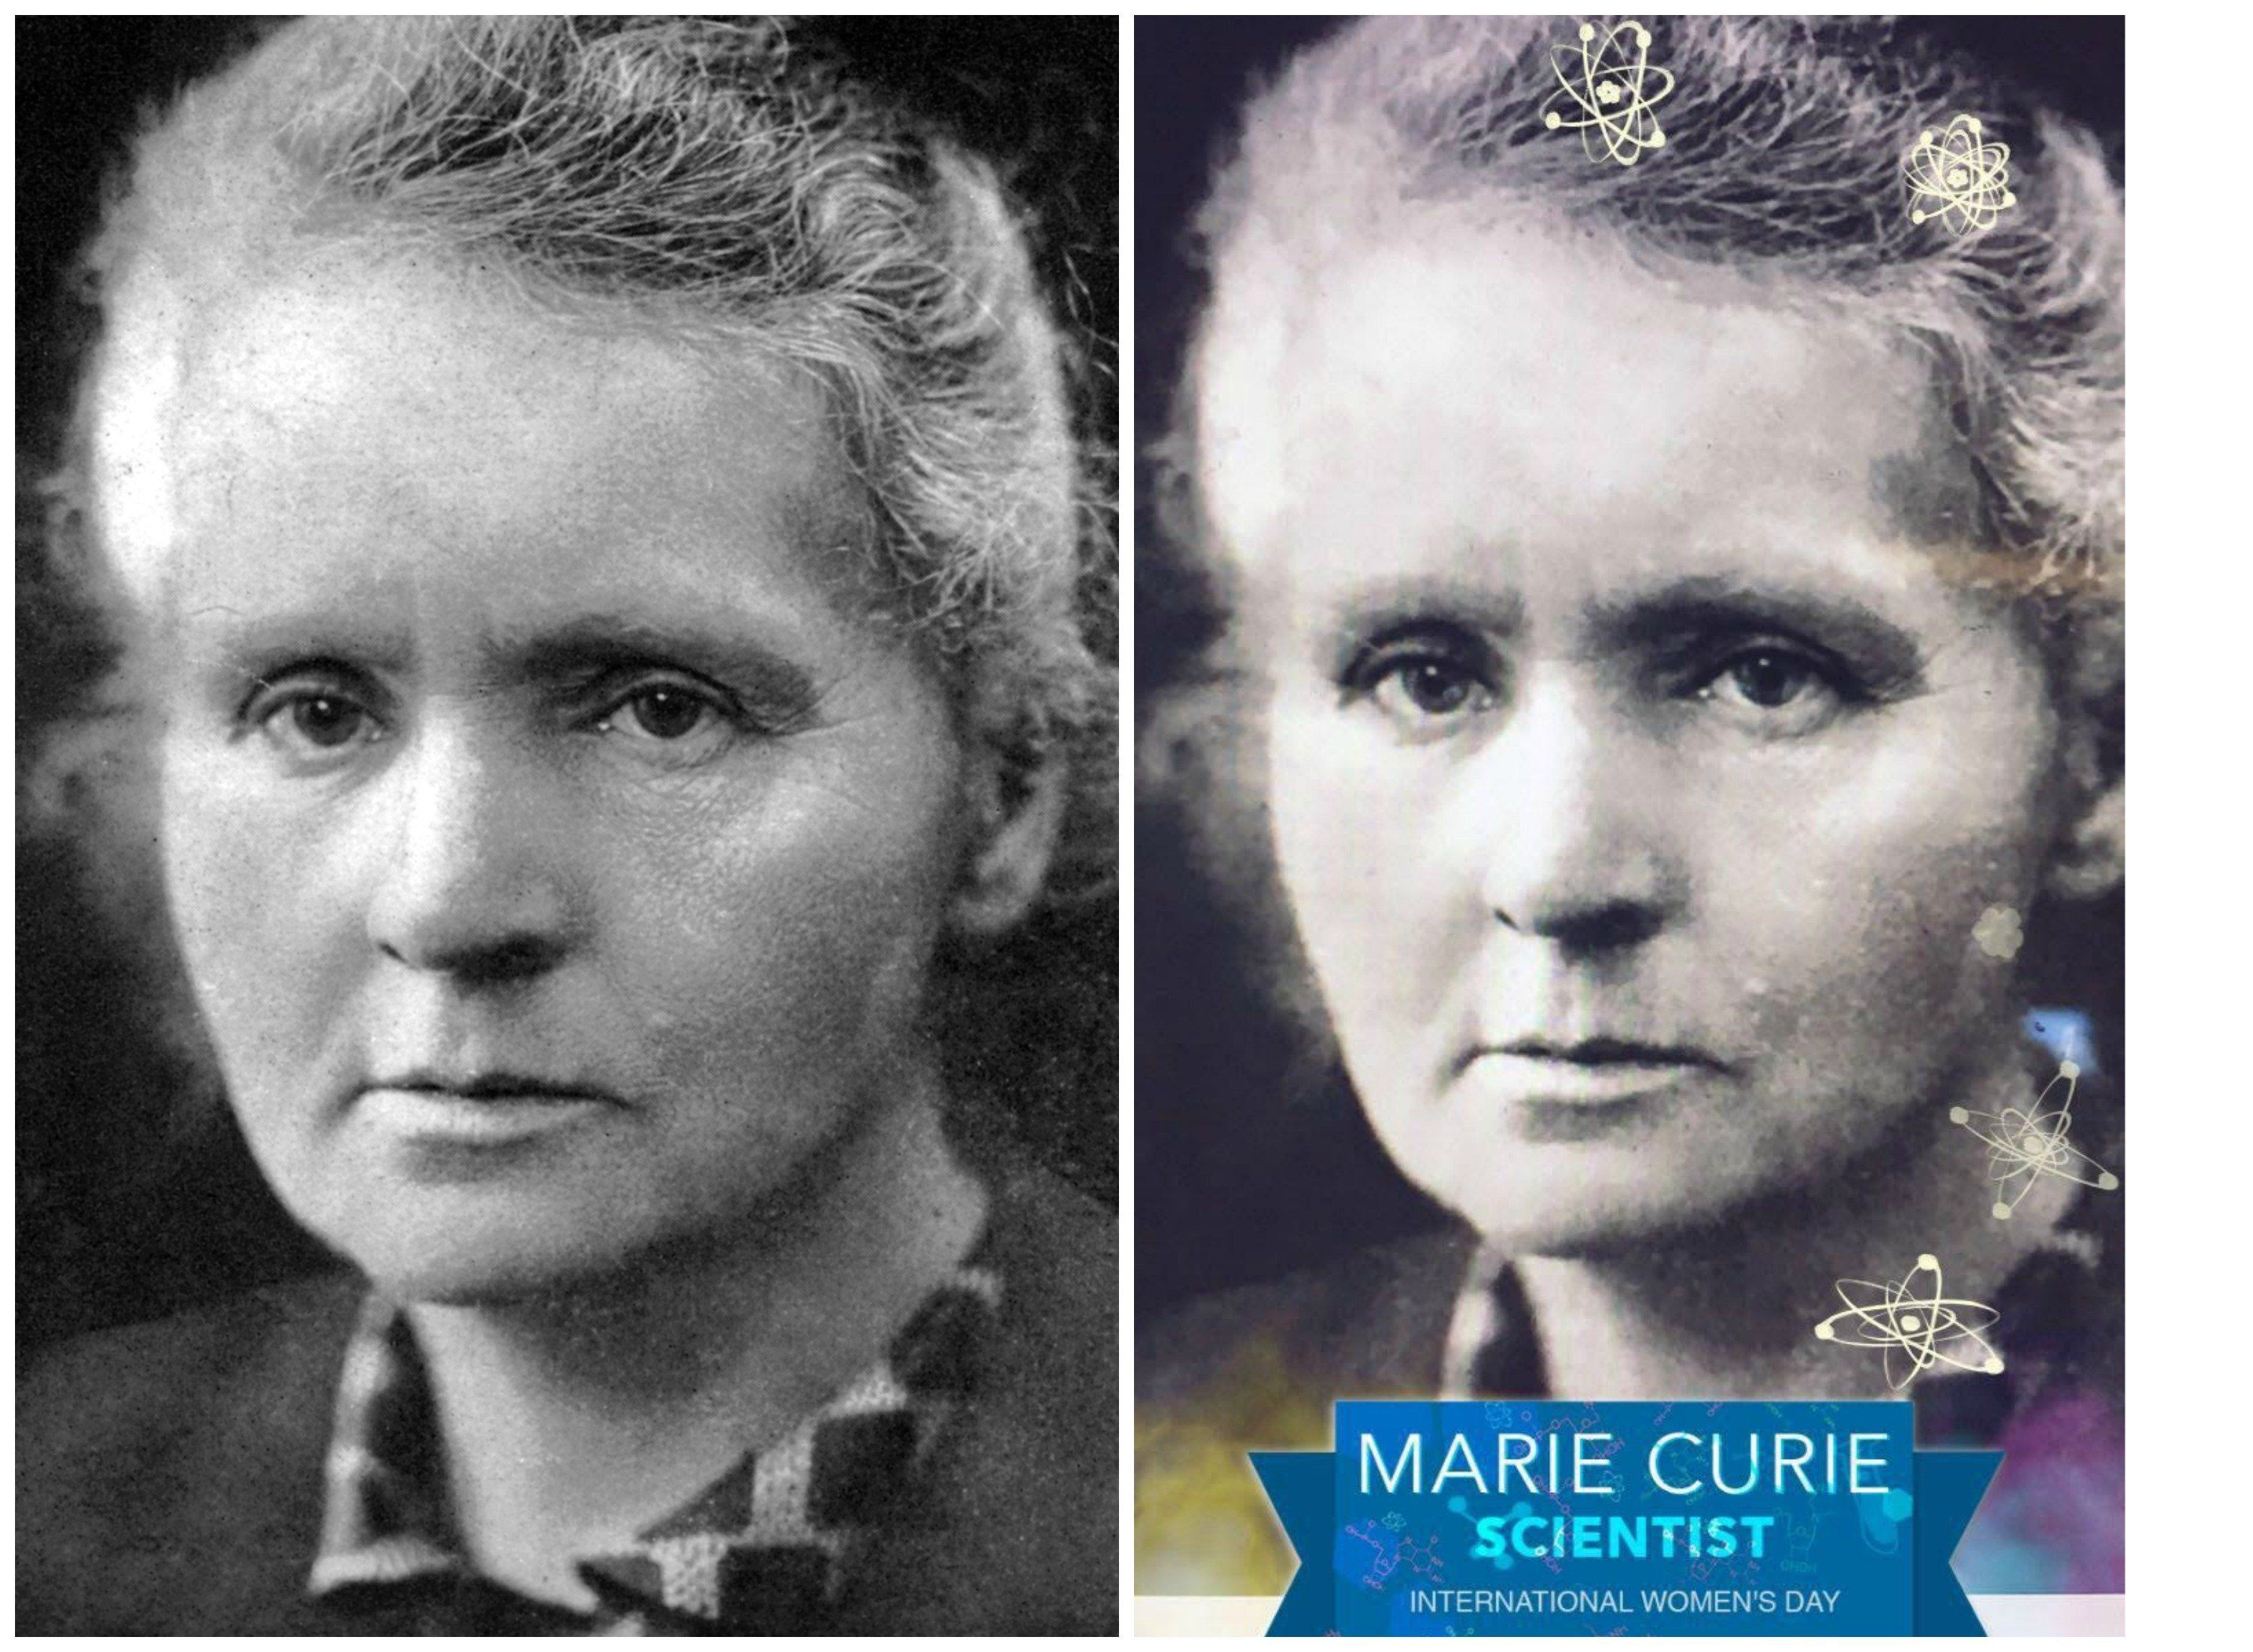 A photo of Marie Curie adjacent to a Snapchat-filtered photo of Marie Curie.